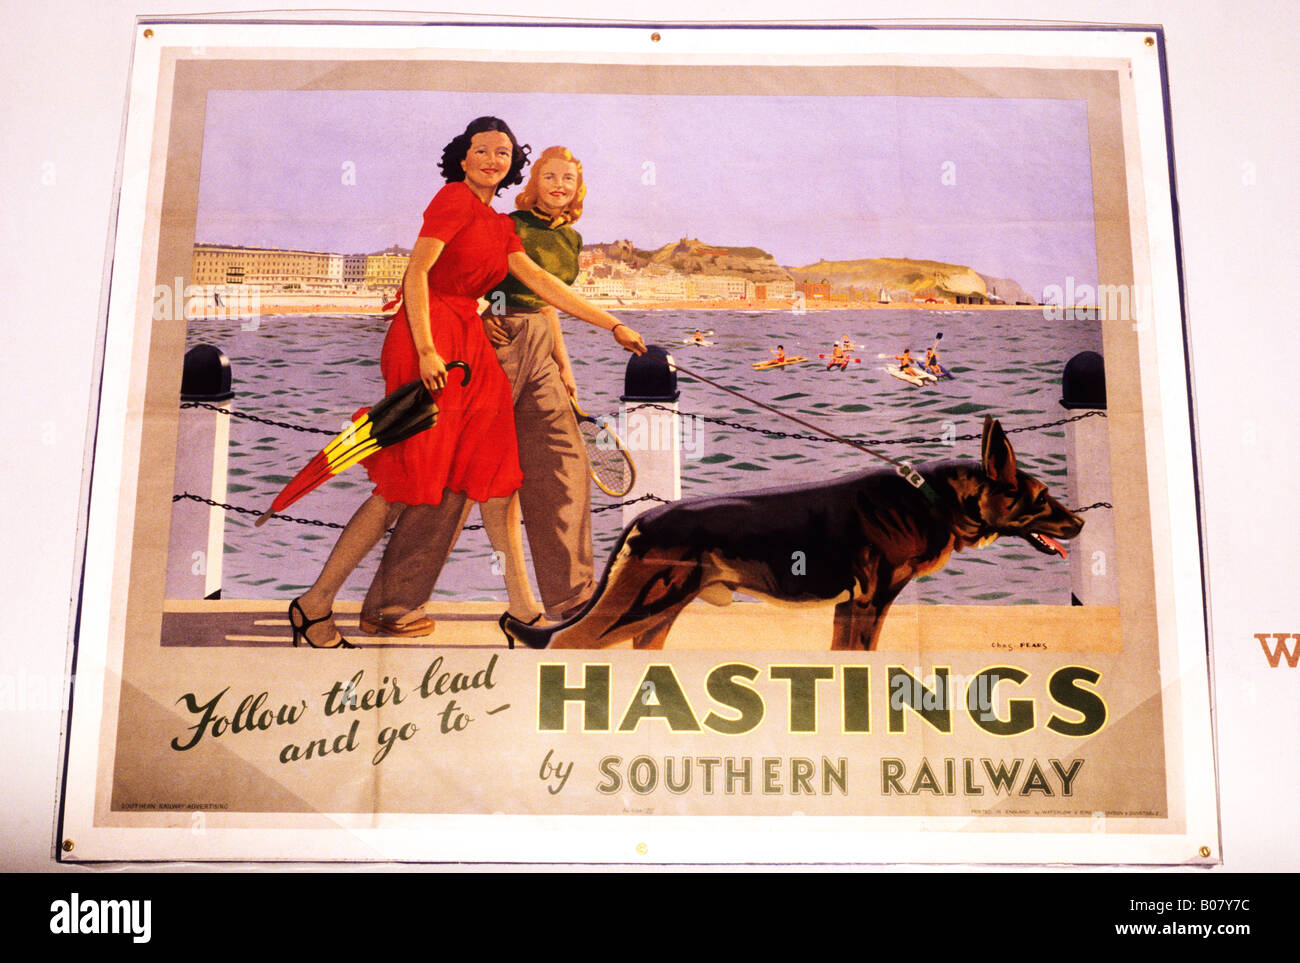 Hastings publicity poster 1934 30's thirties southern railway advertising holiday ladies strolling sea scene - Stock Image